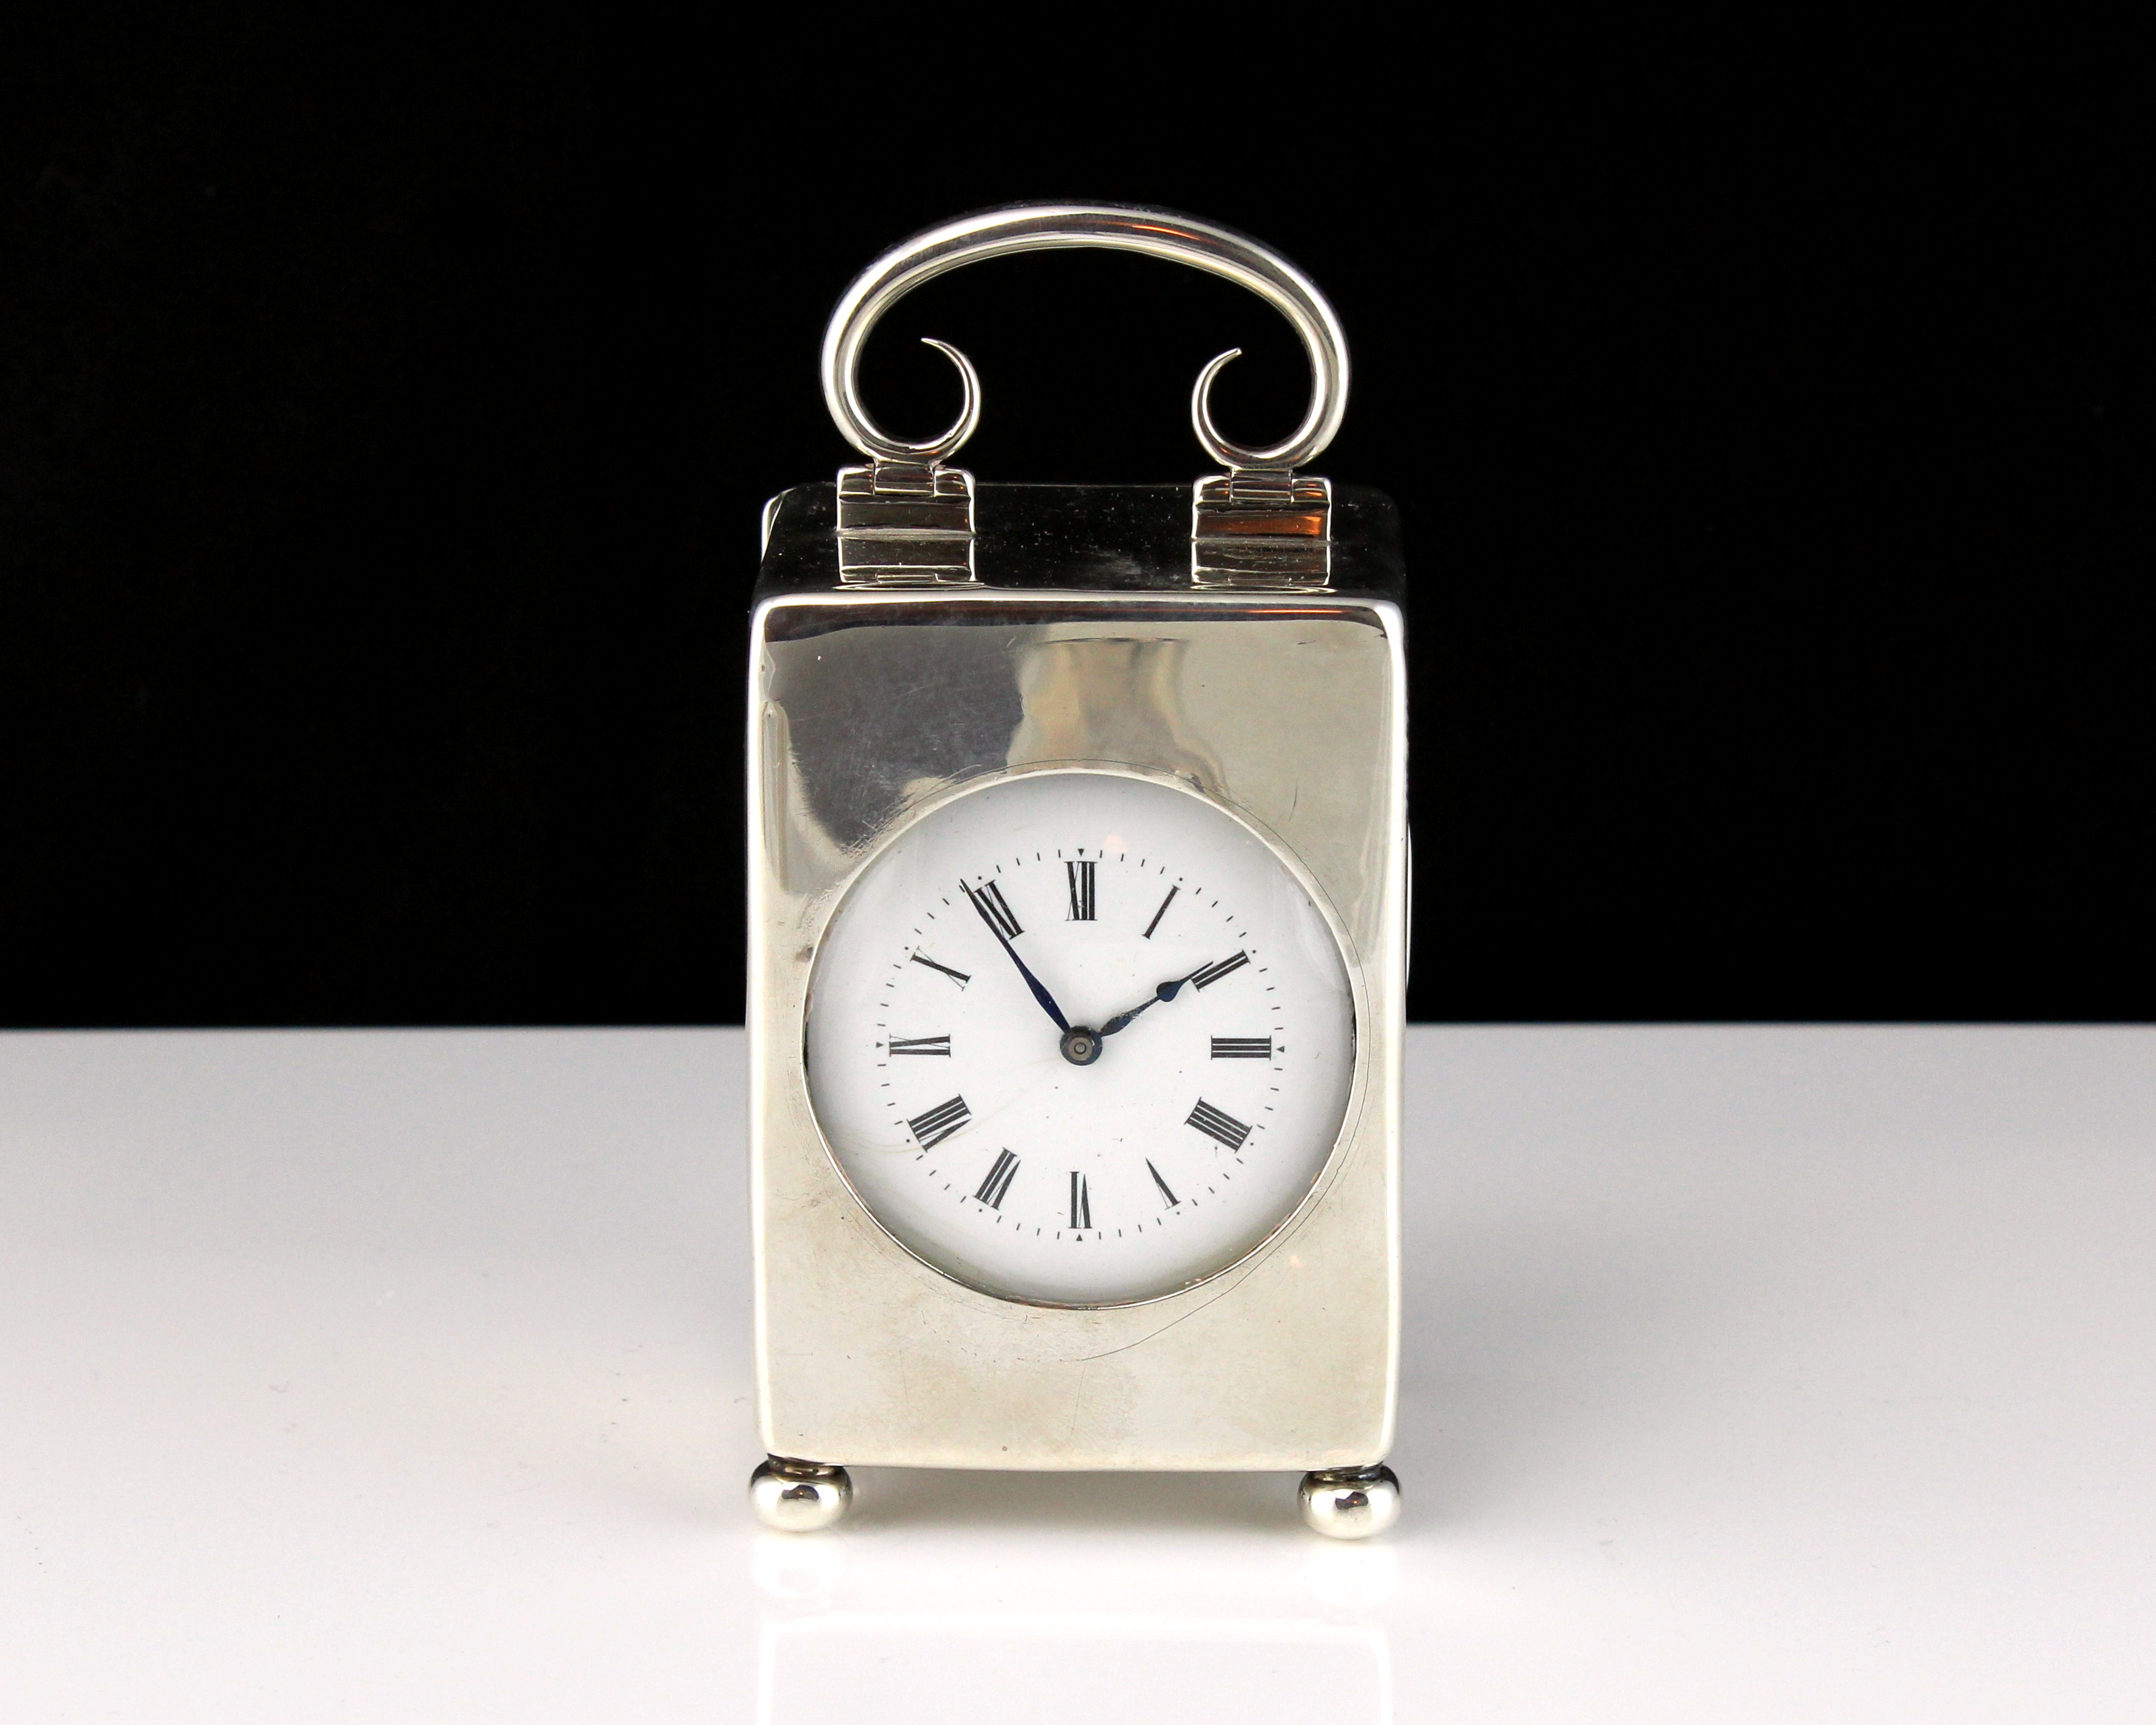 An antique Edwardian Sterling Silver carriage clock by William Comyns, London 1905. Of upright,